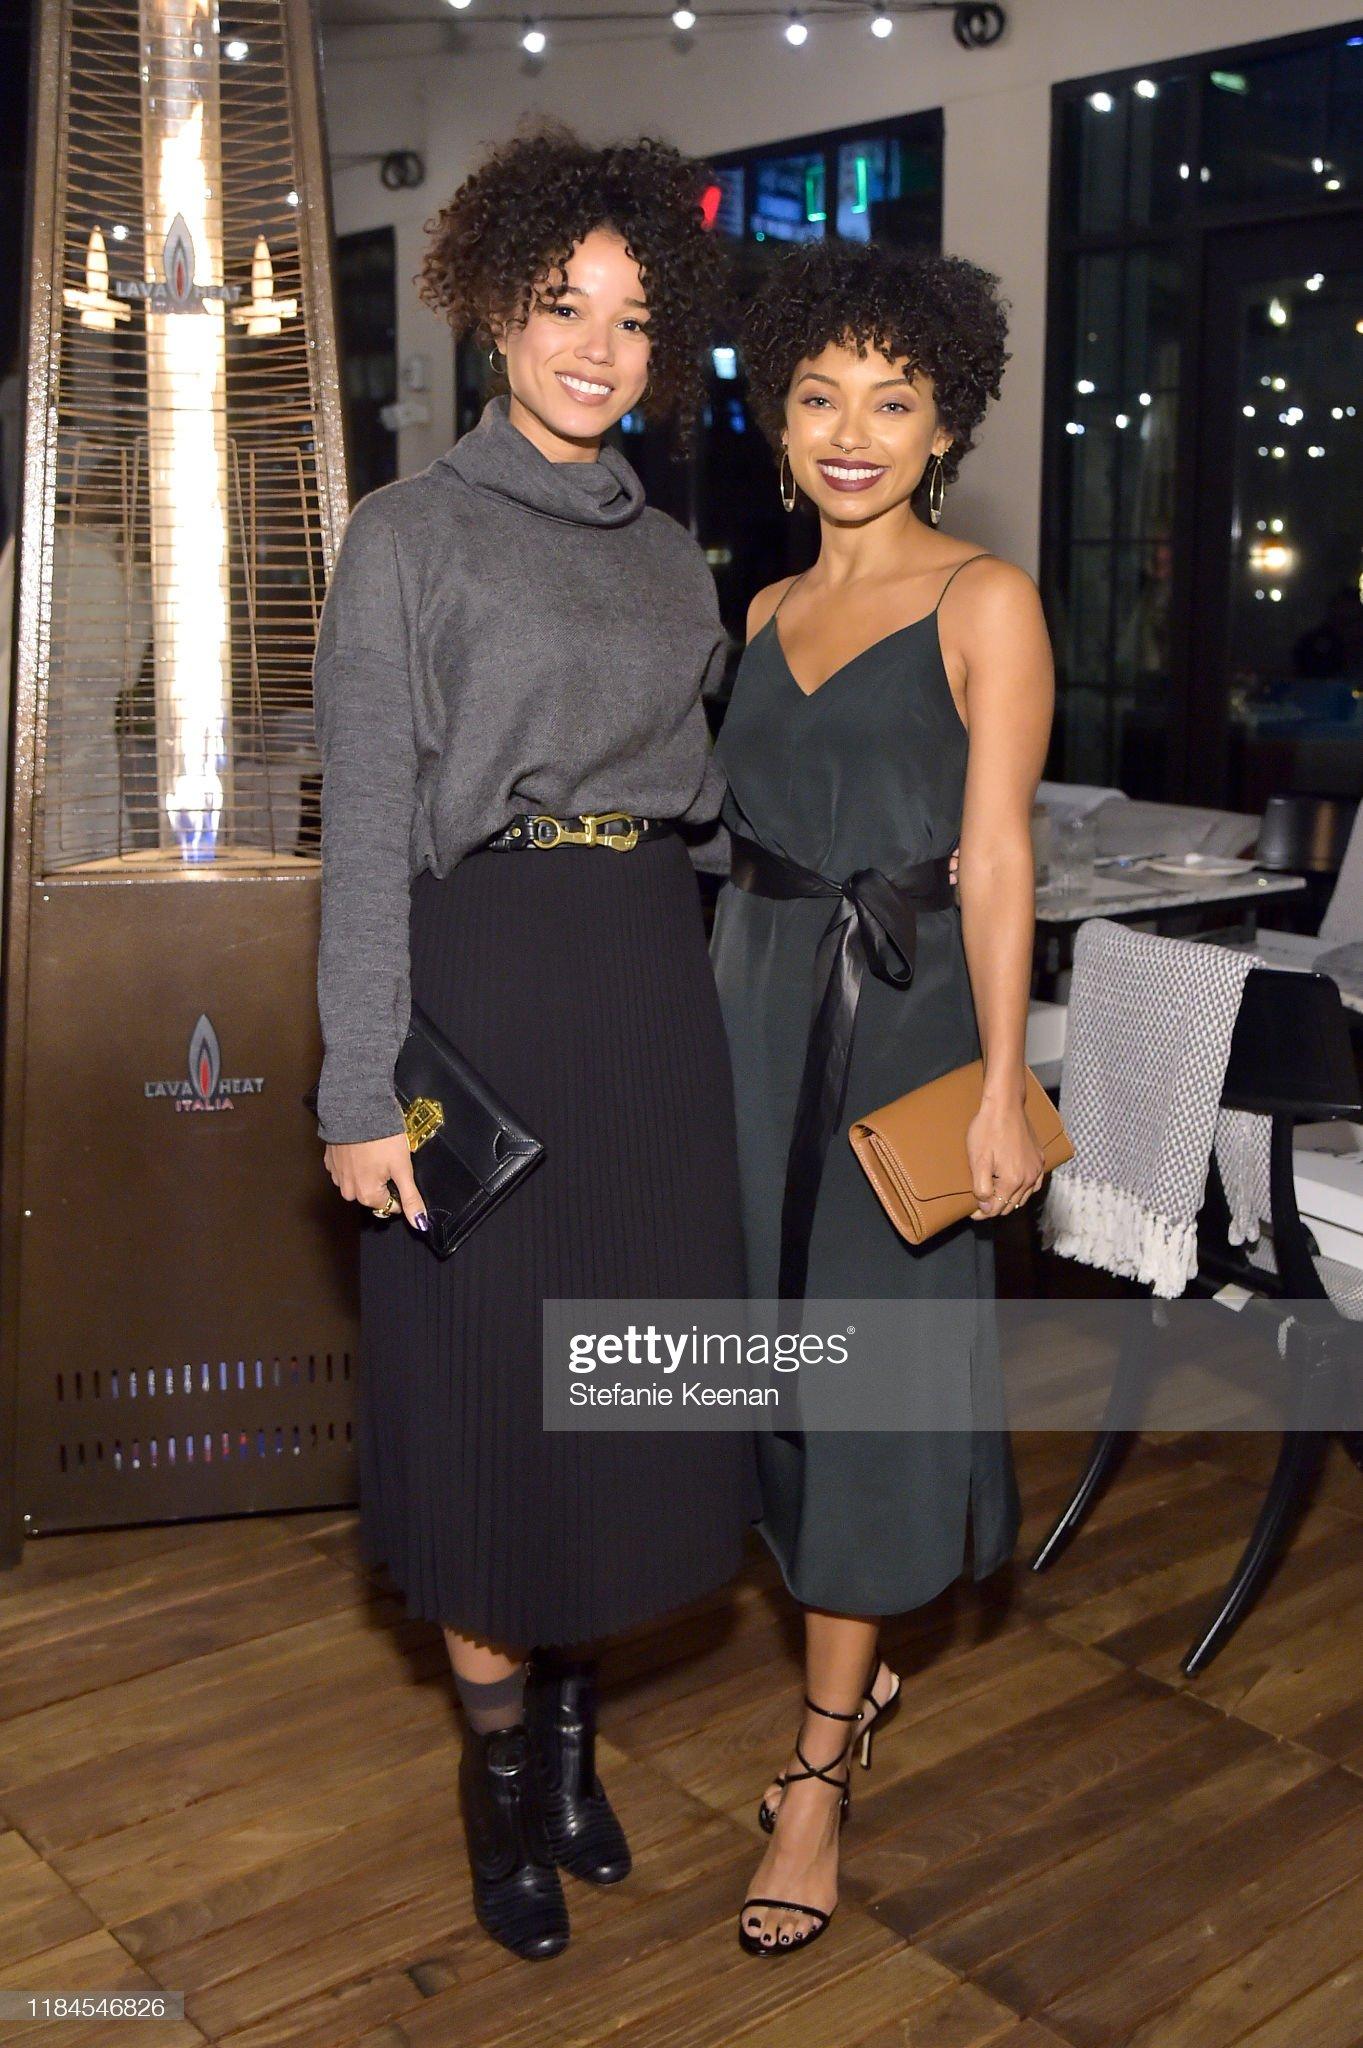 ¿Cuánto mide Logan Browning? - Altura - Real height Alisha-wainwright-and-logan-browning-as-cuyana-x-rad-host-panel-and-picture-id1184546826?s=2048x2048